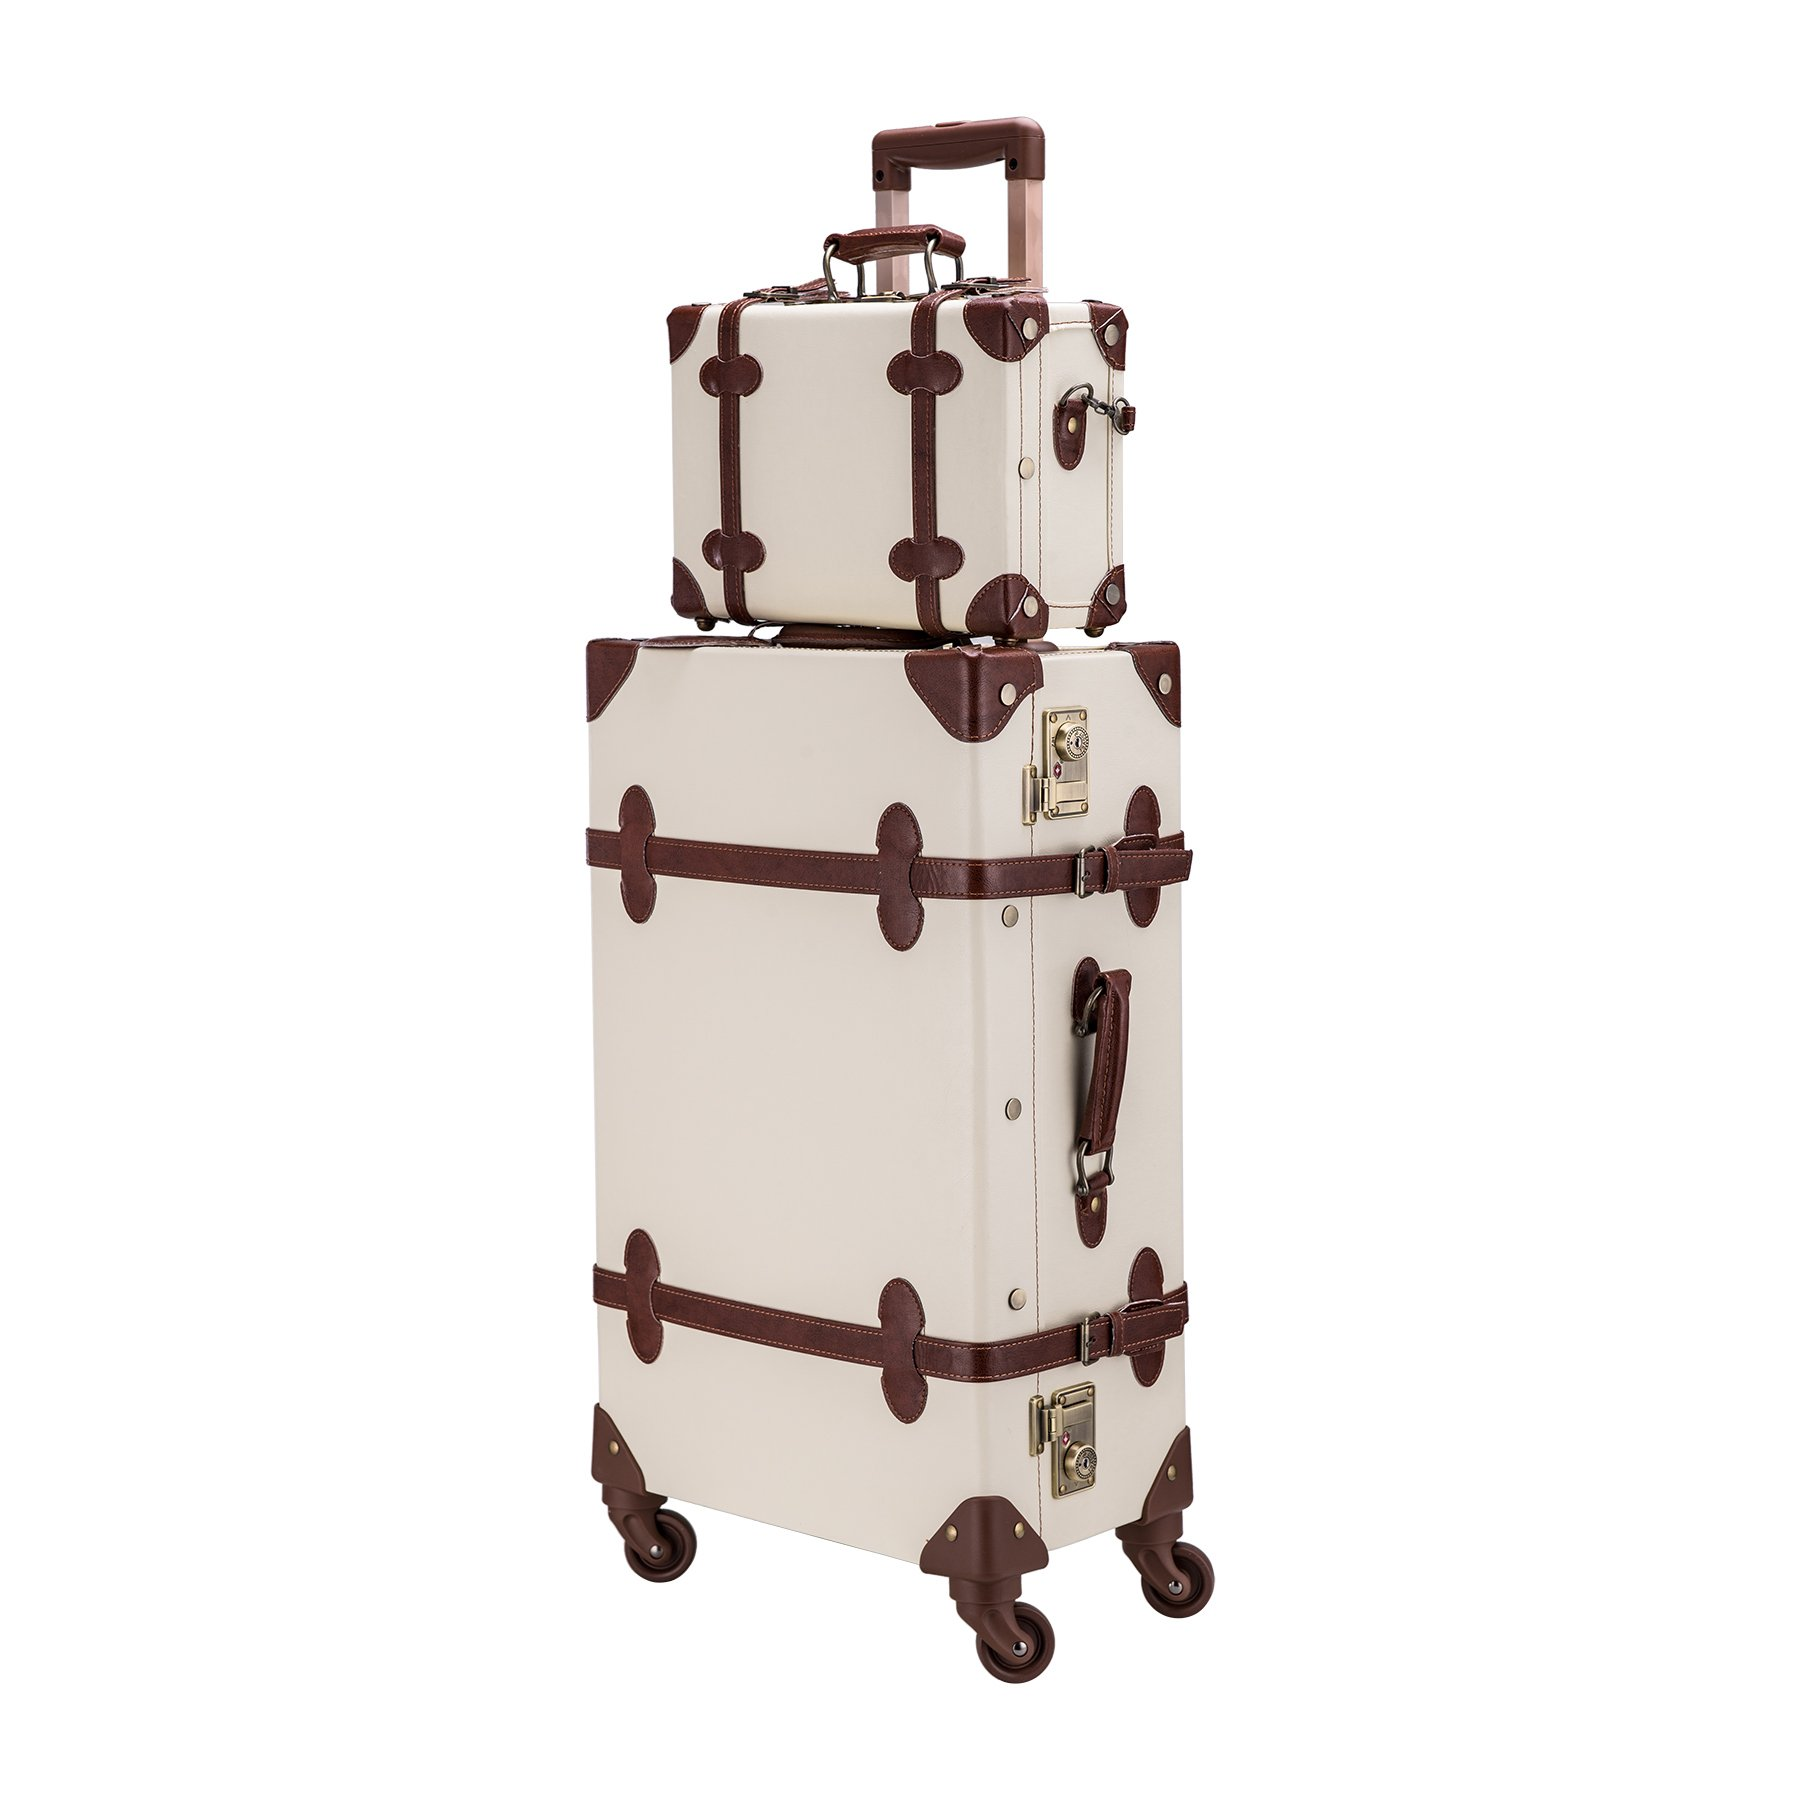 CO-Z Premium Vintage Luggage Sets 24'' Trolley Suitcase and 12'' Hand Bag Set with TSA Locks (Pink + Beige) (12'' +24'' White) by CO-Z